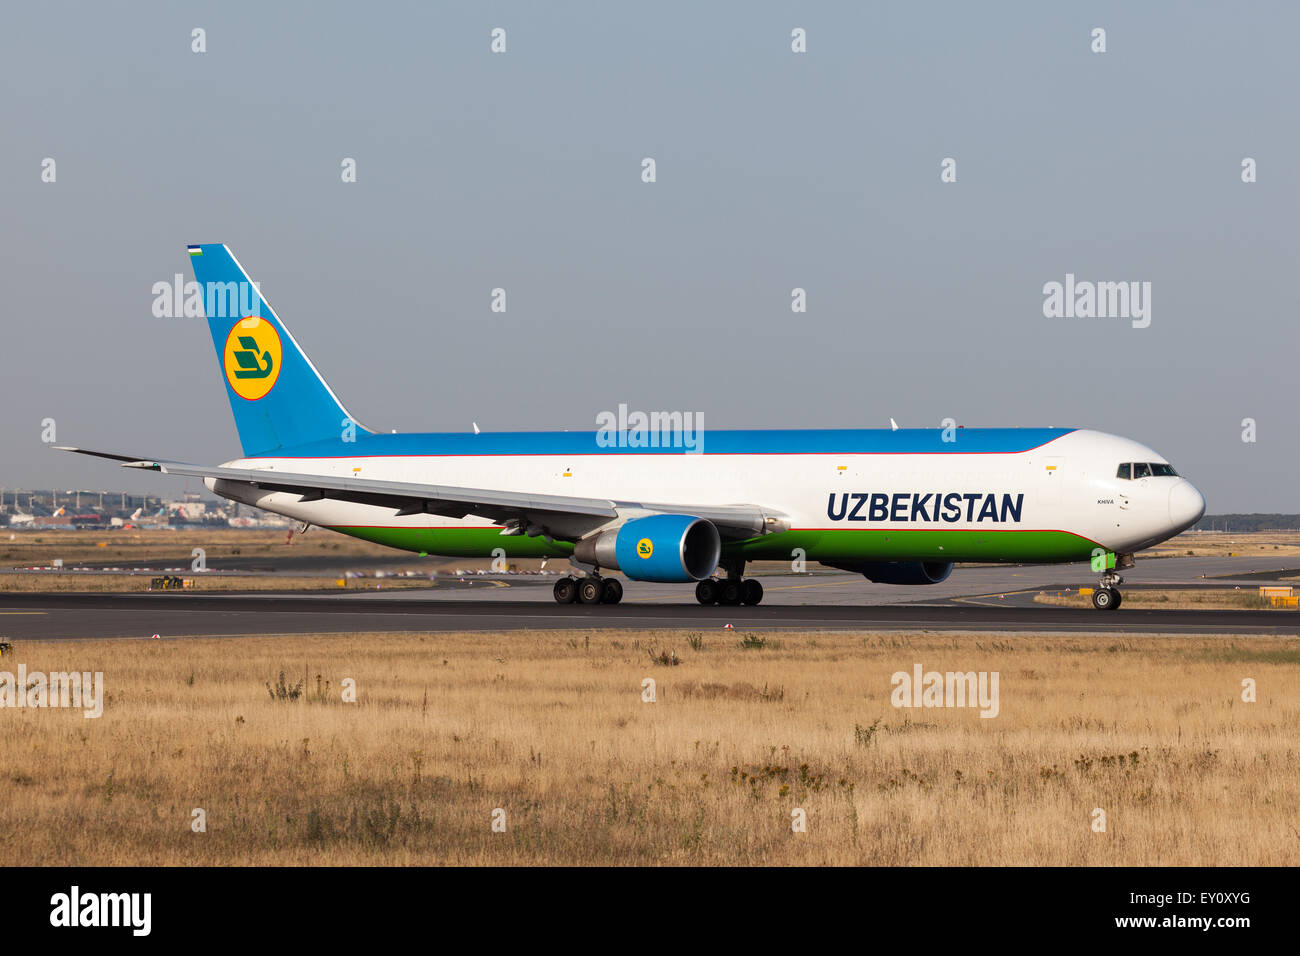 Boeing 767-300 of the Uzbekistan Airways ready for take off at the Frankfurt International Airport - Stock Image